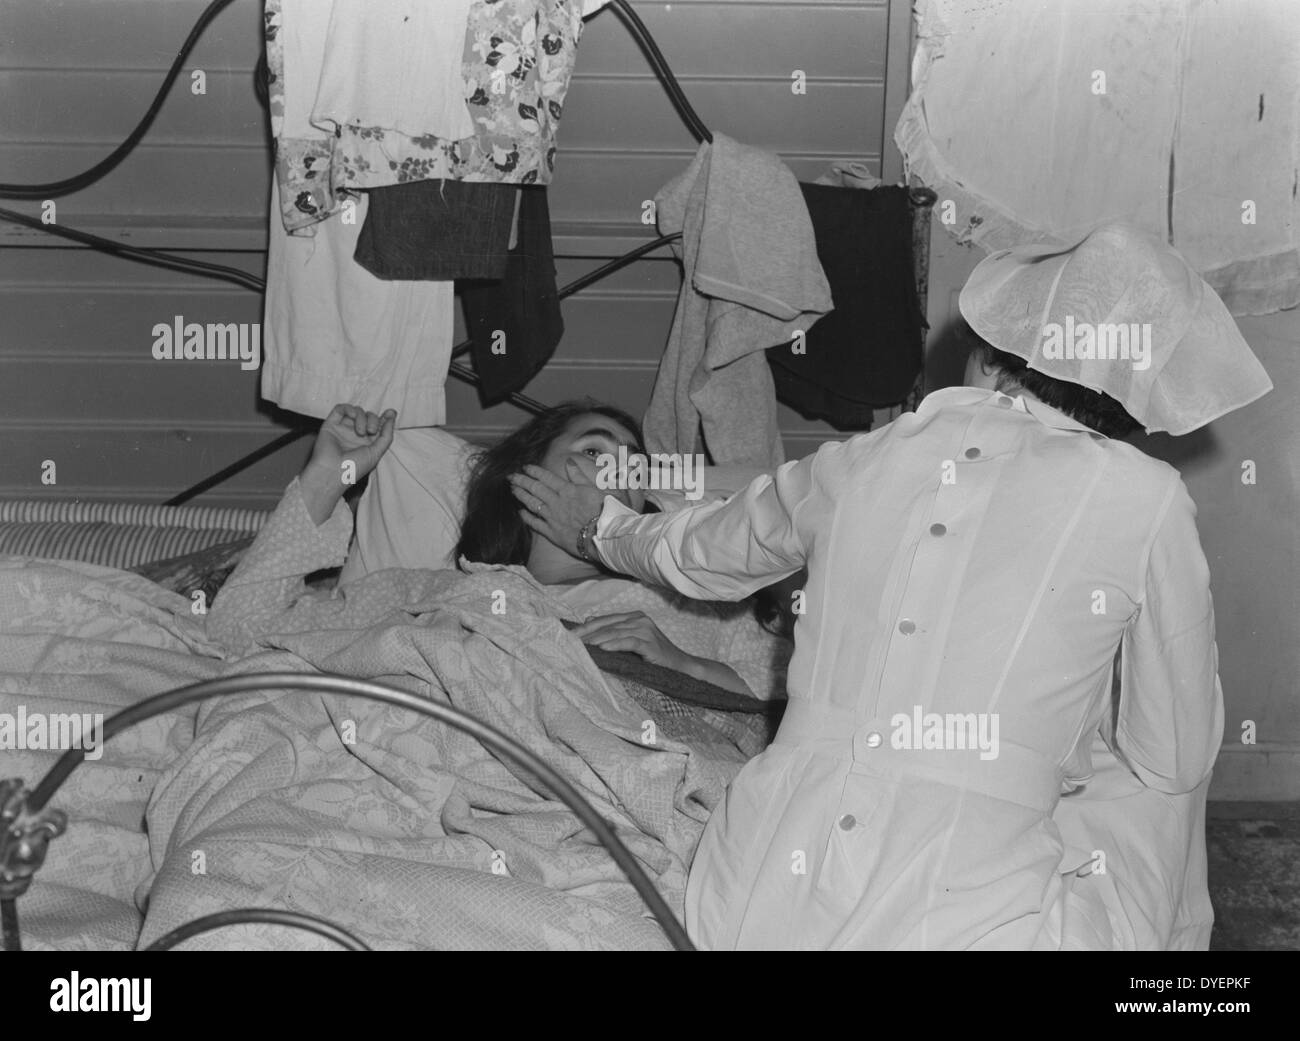 Medical Camp Black and White Stock Photos & Images - Alamy